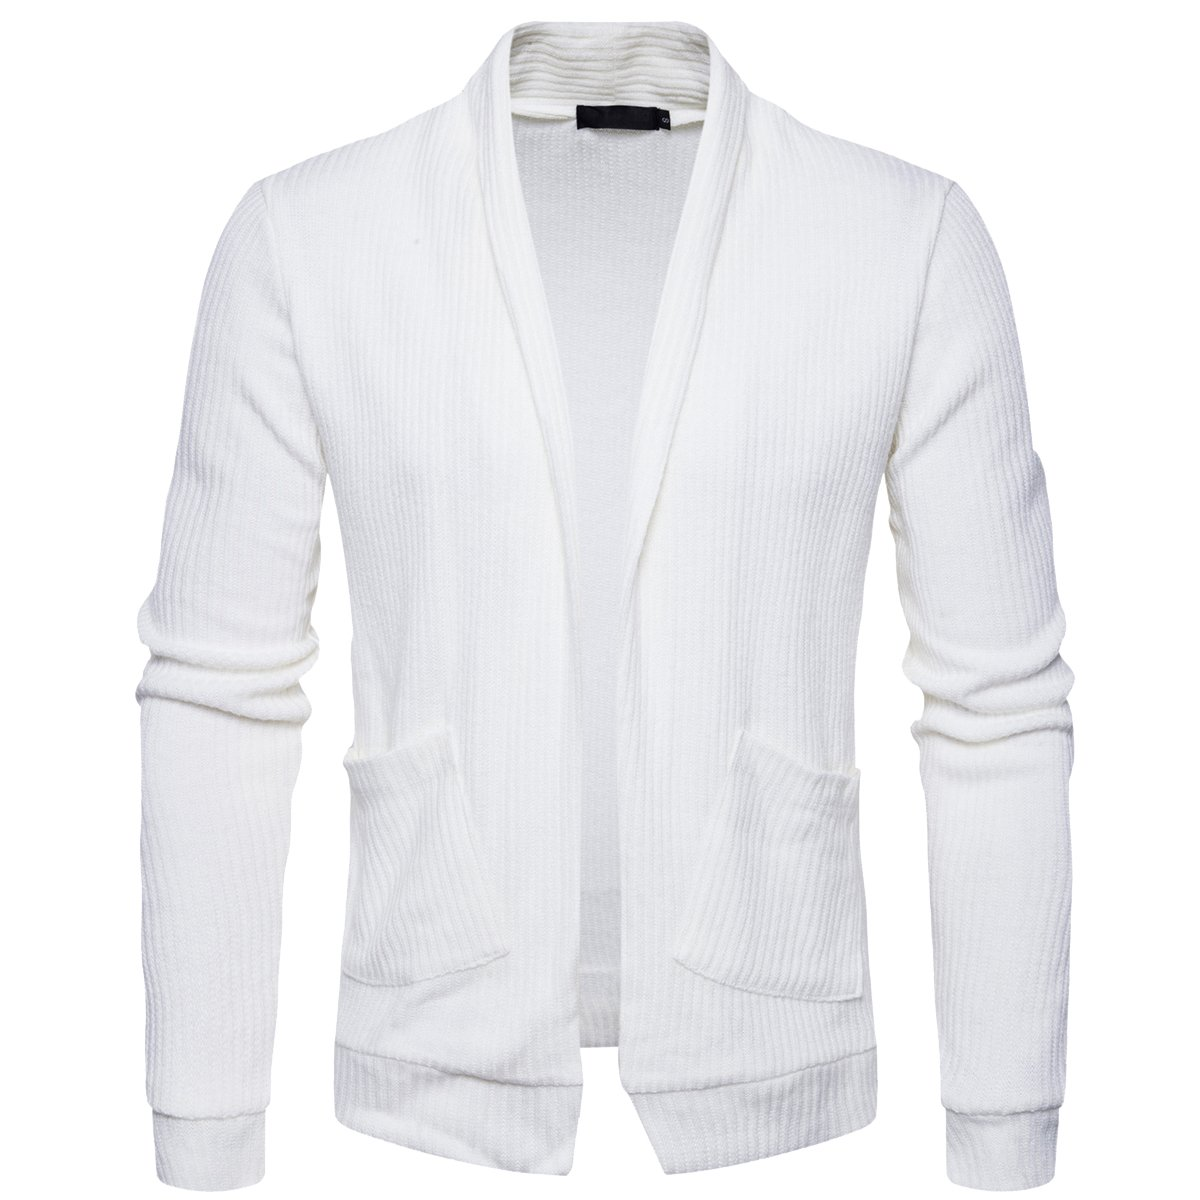 Cottory Men's No Button Pure Color Soft Shawl Collar Cardigan Sweater White Large